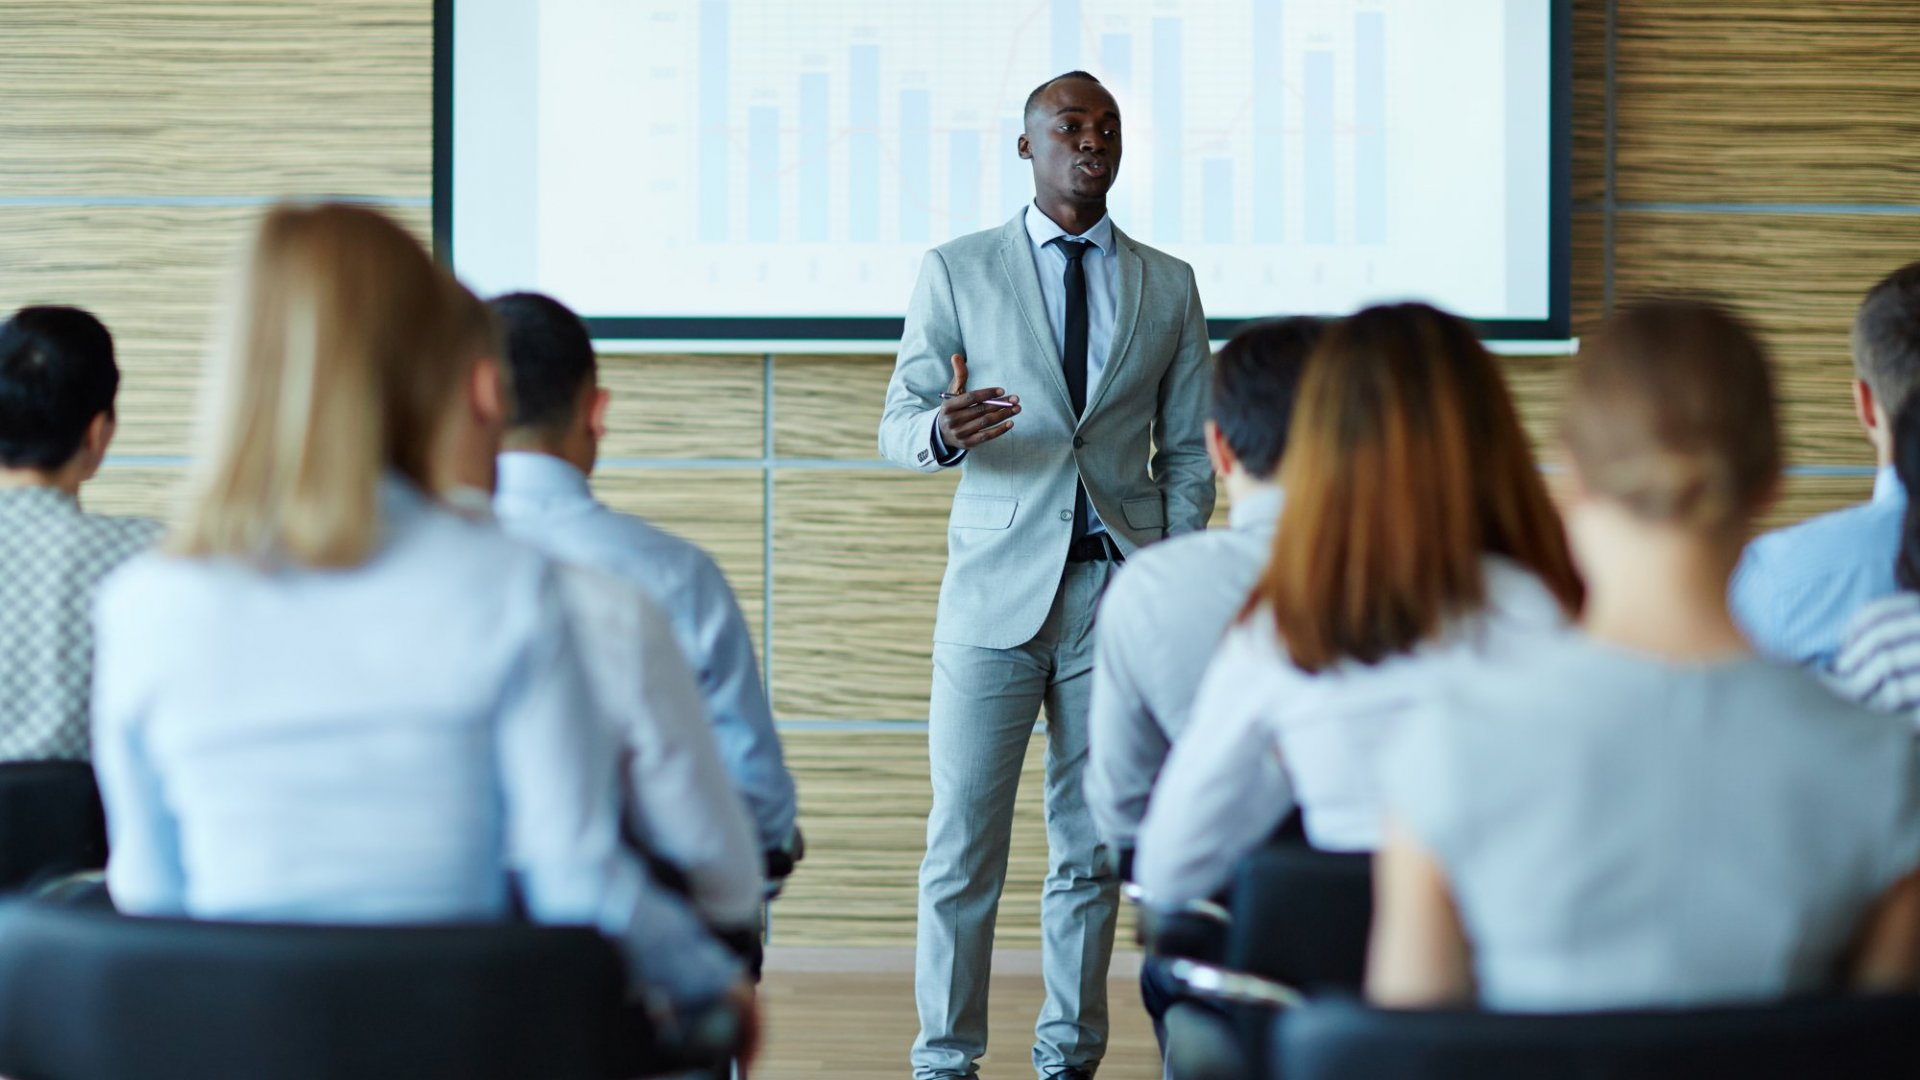 If You Want Your Next Presentation to Lead to the Decision You Want, Do These 6 Things